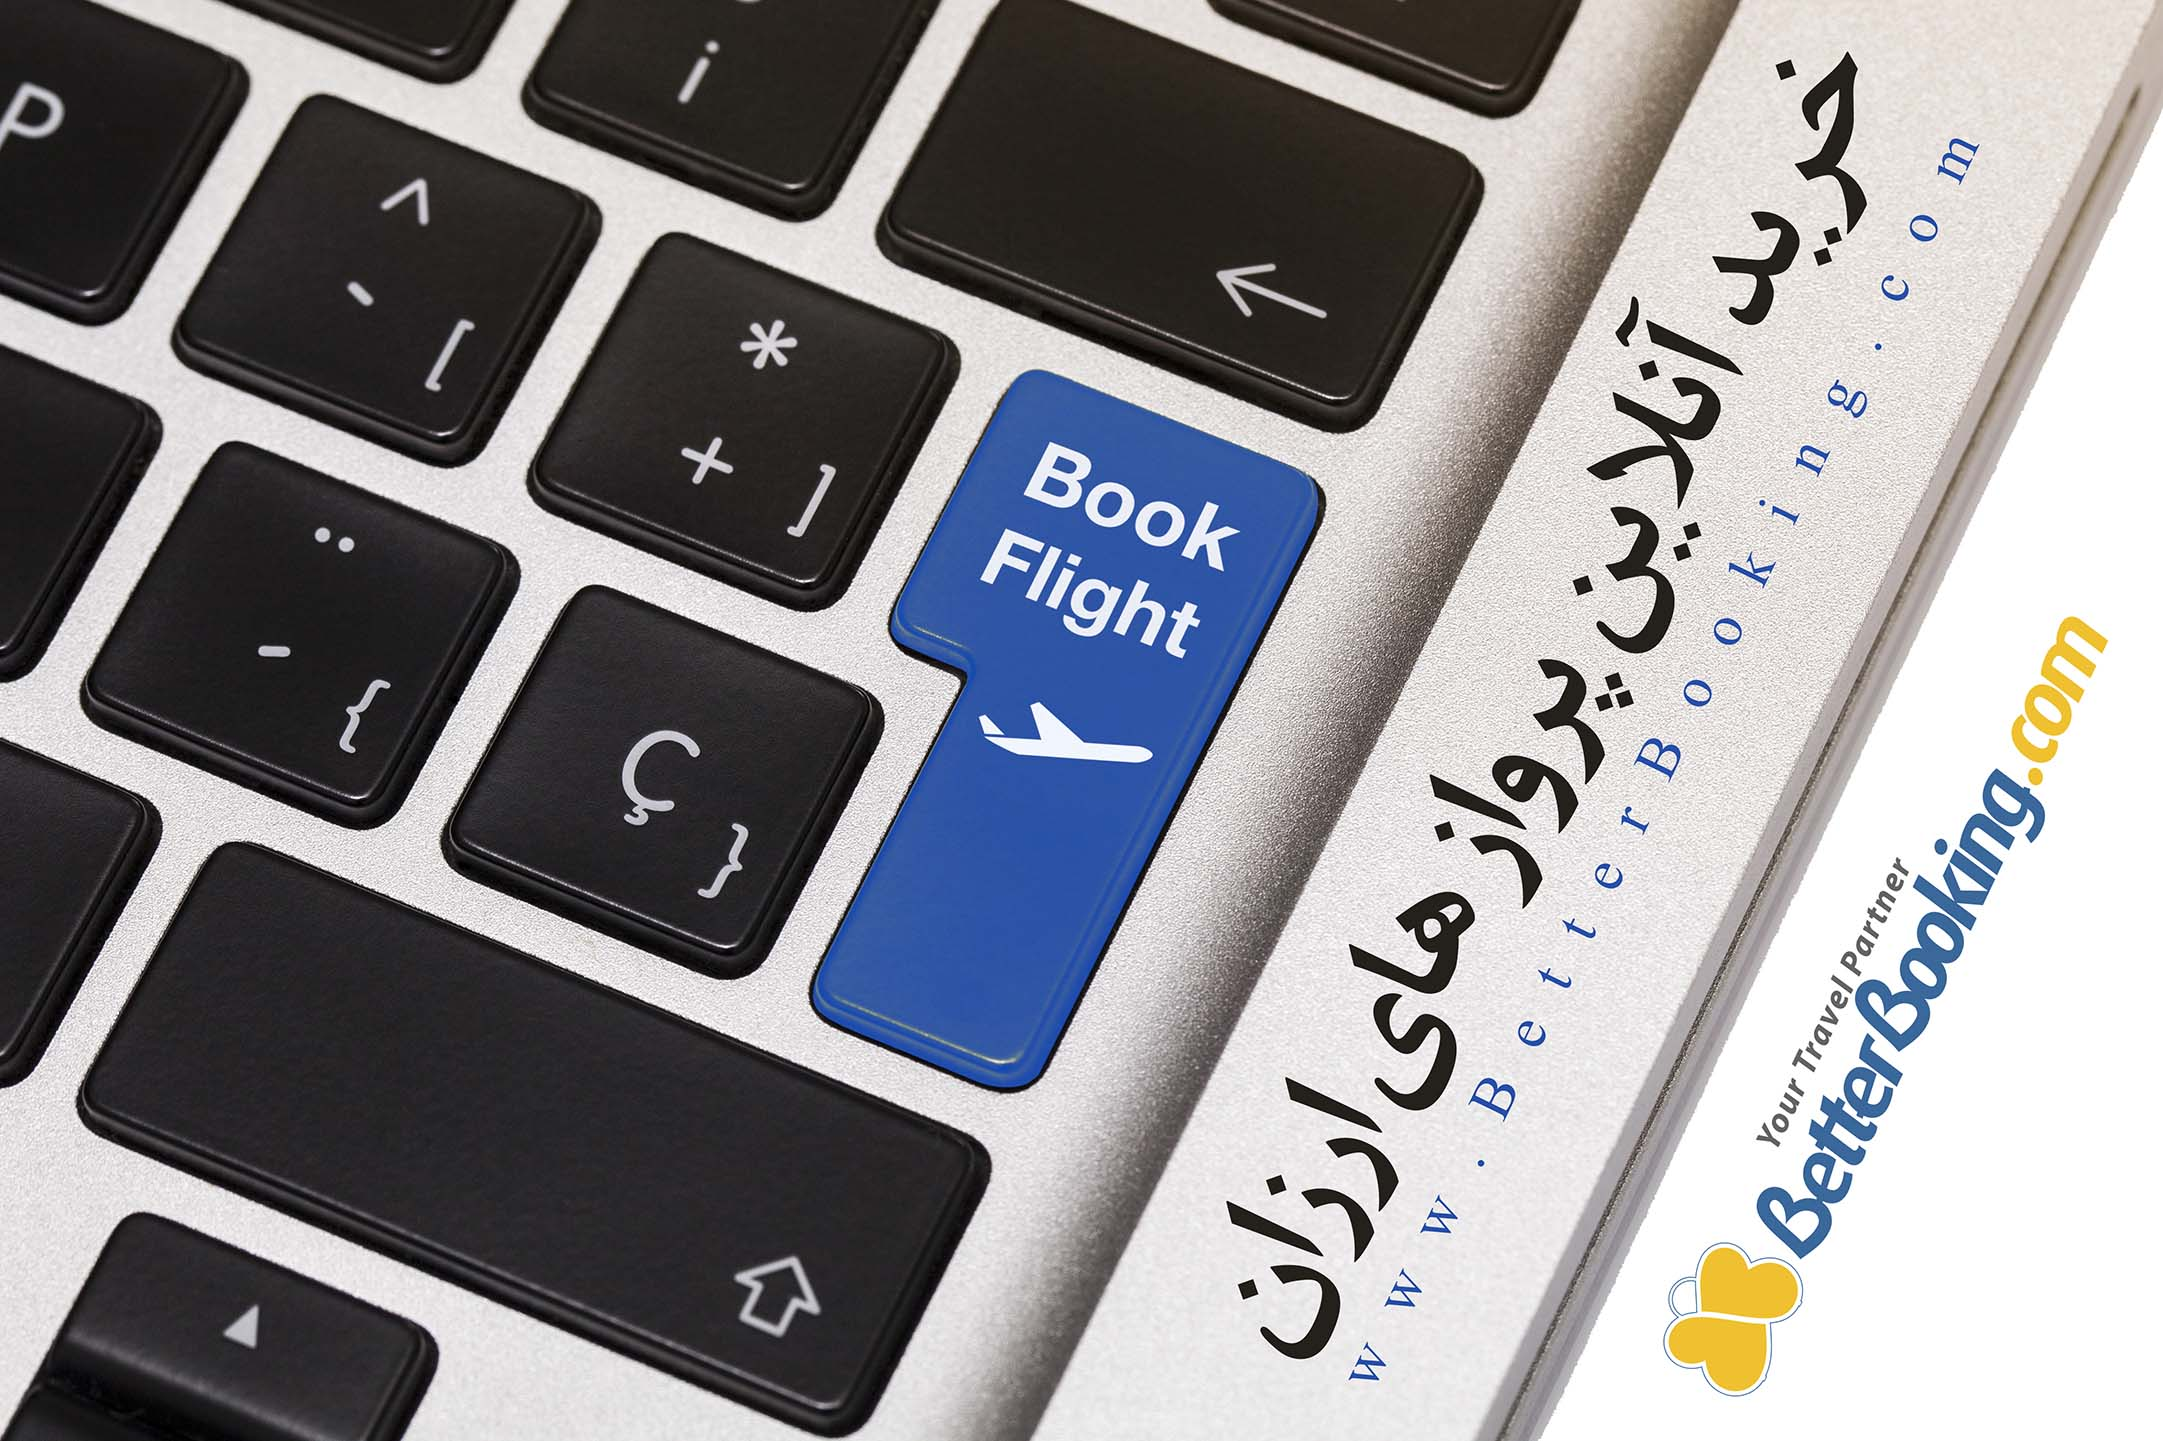 """Laptop key showing the word """"book flight"""", in blue color."""